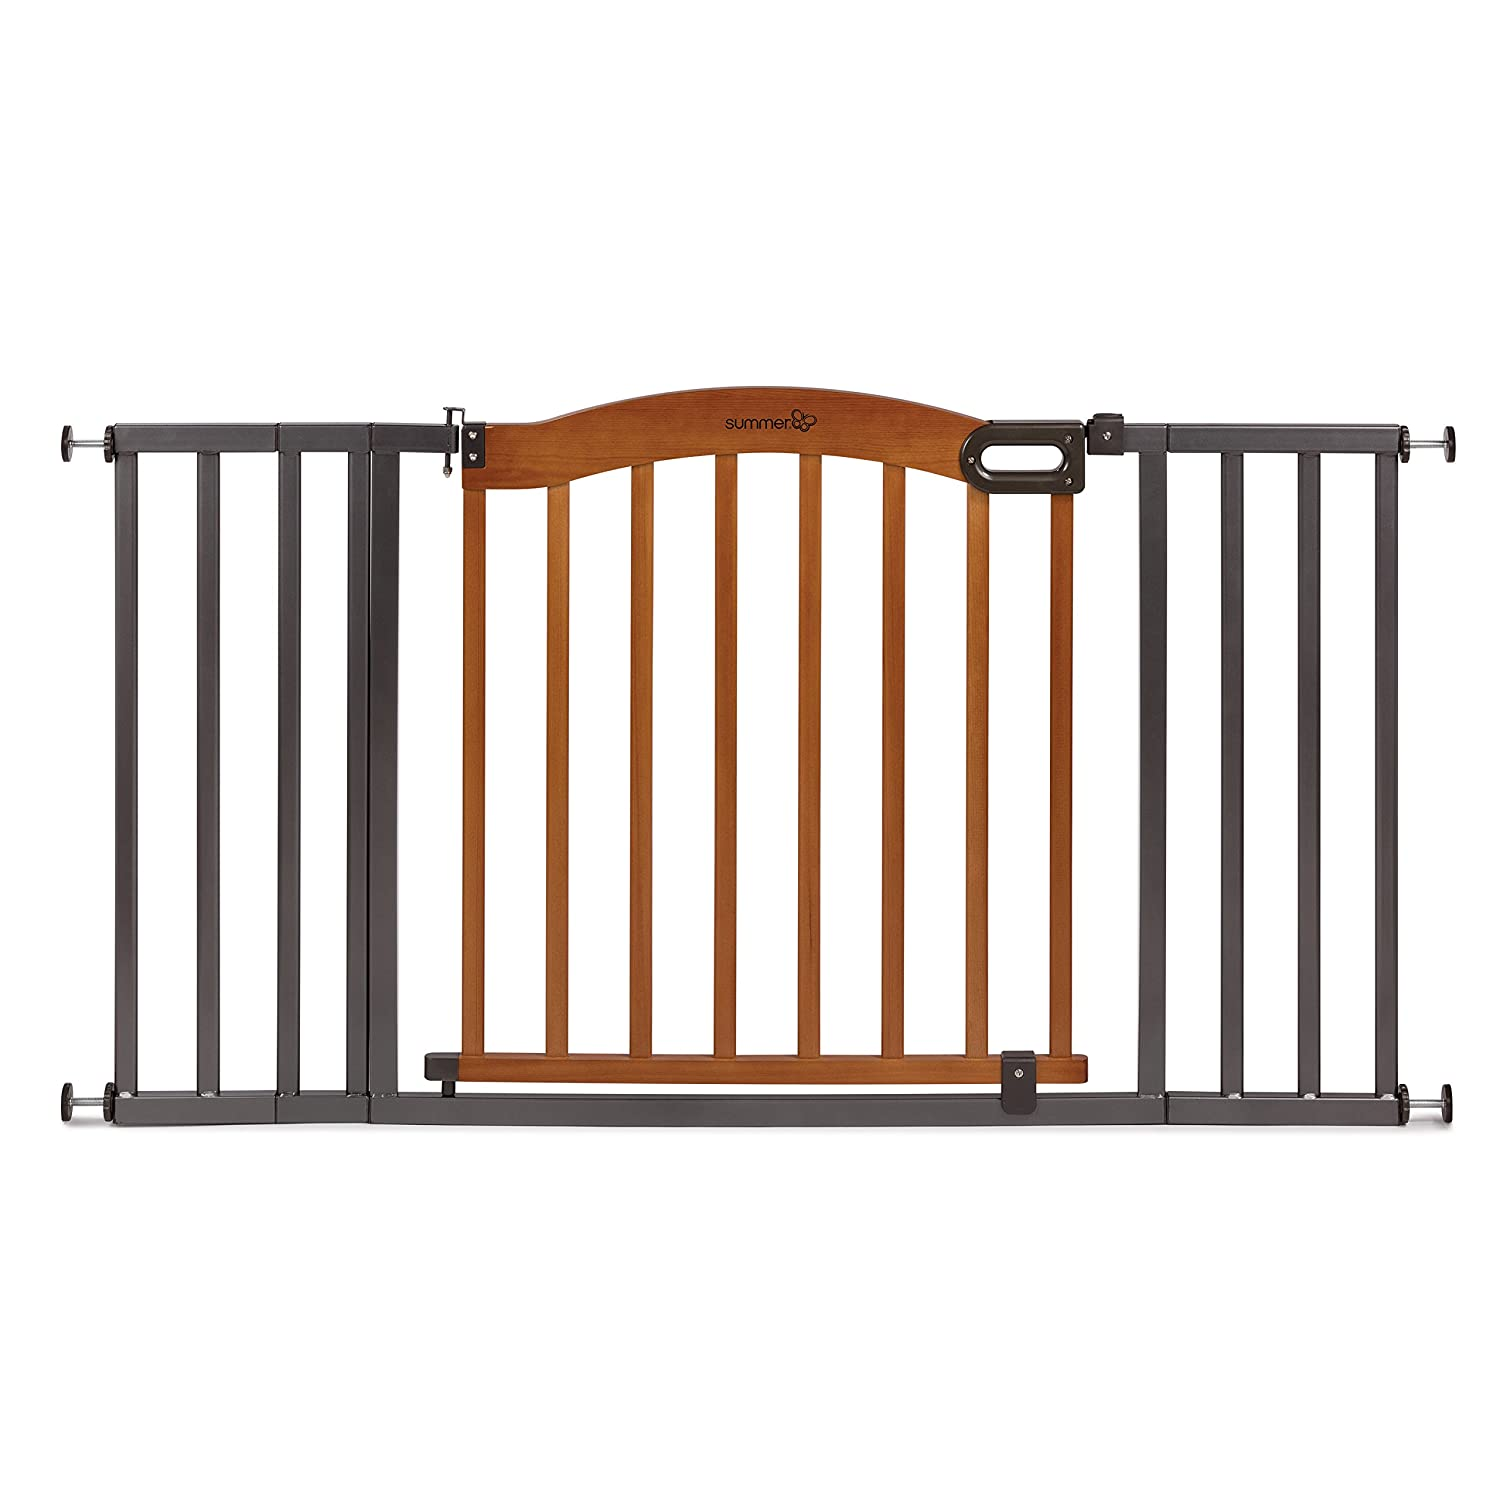 Summer Decorative Wood & Metal 5 Foot Pressure Mounted Baby Gate, Brown/Black